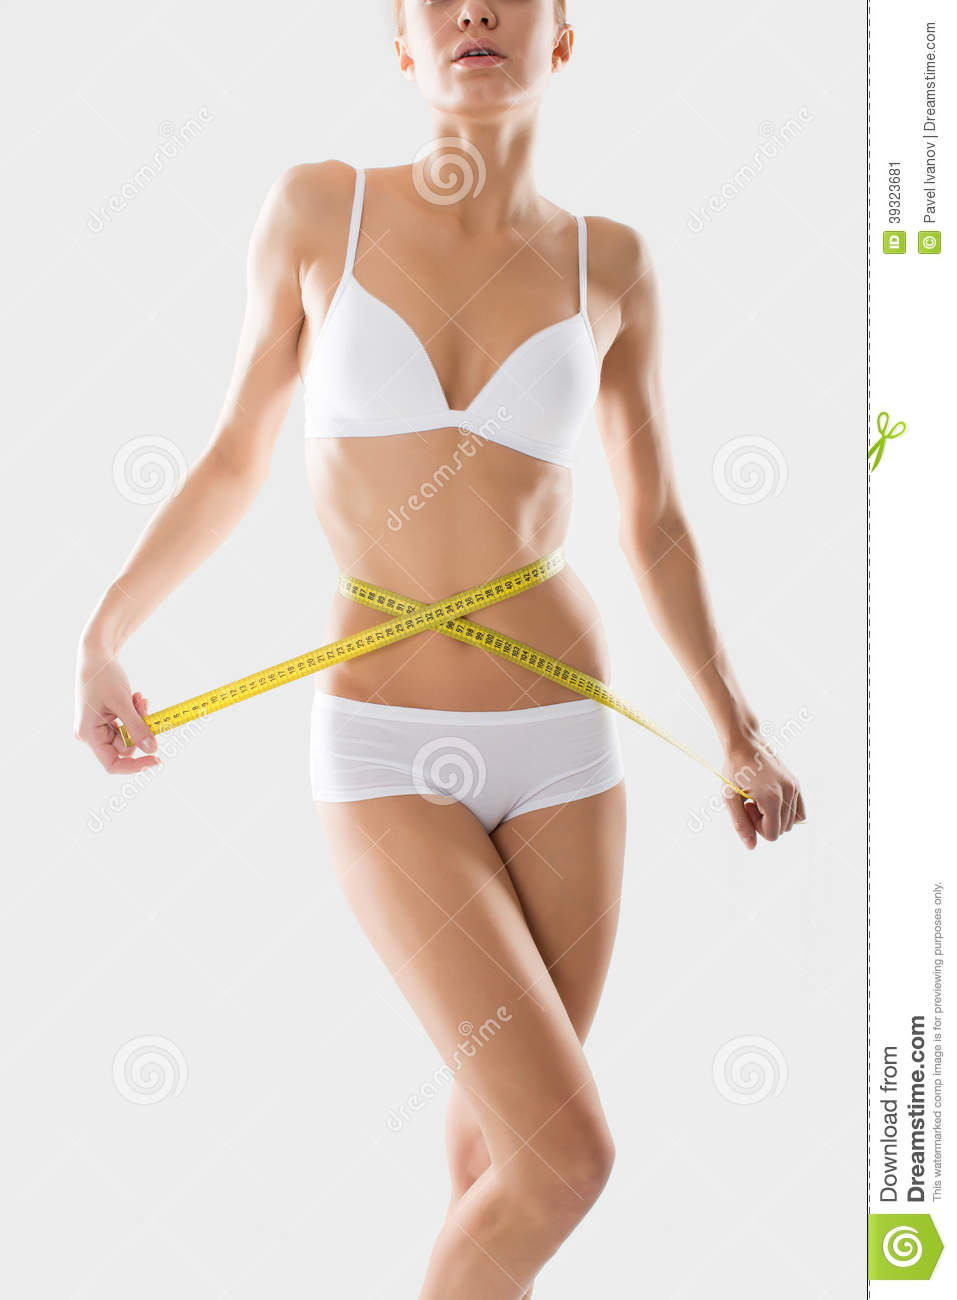 Girl Underwear Engaged In Measurement Figures Stock Photo   Image